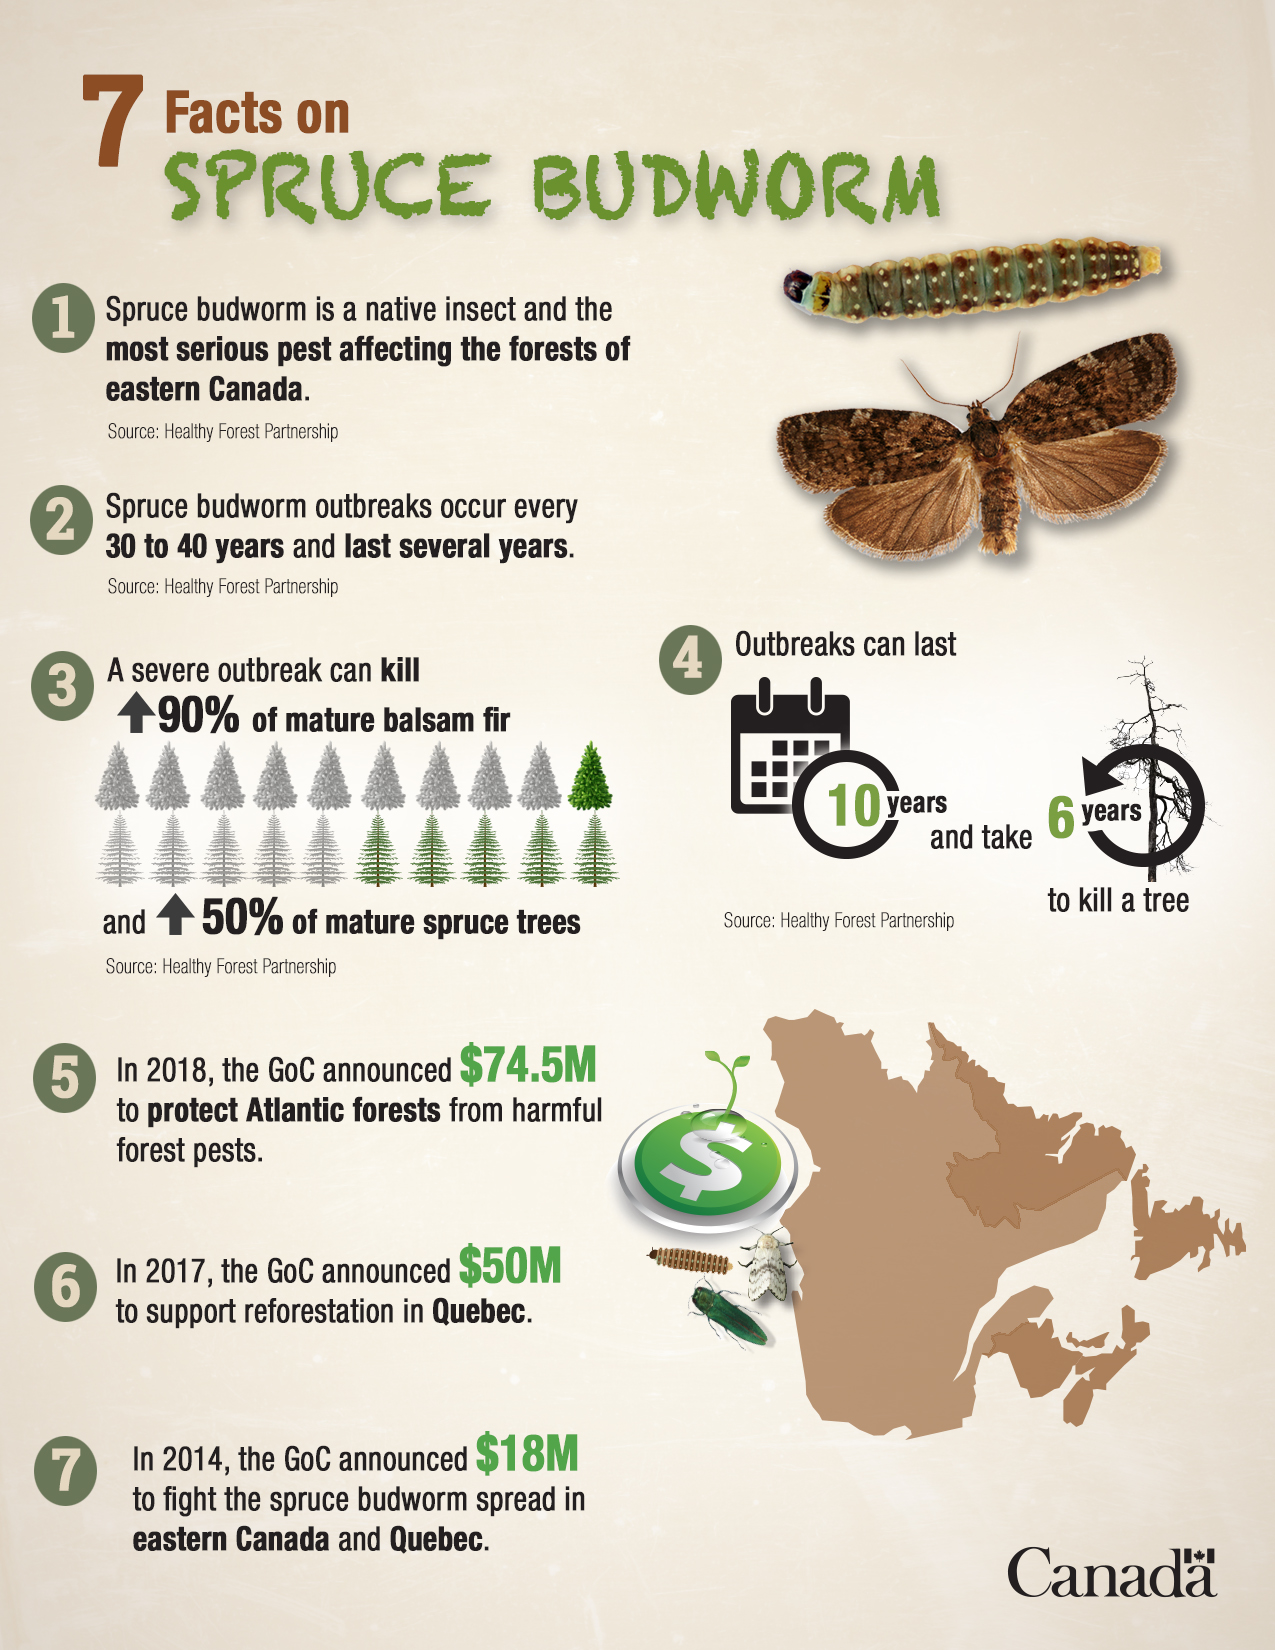 7 facts on Spruce Budworm